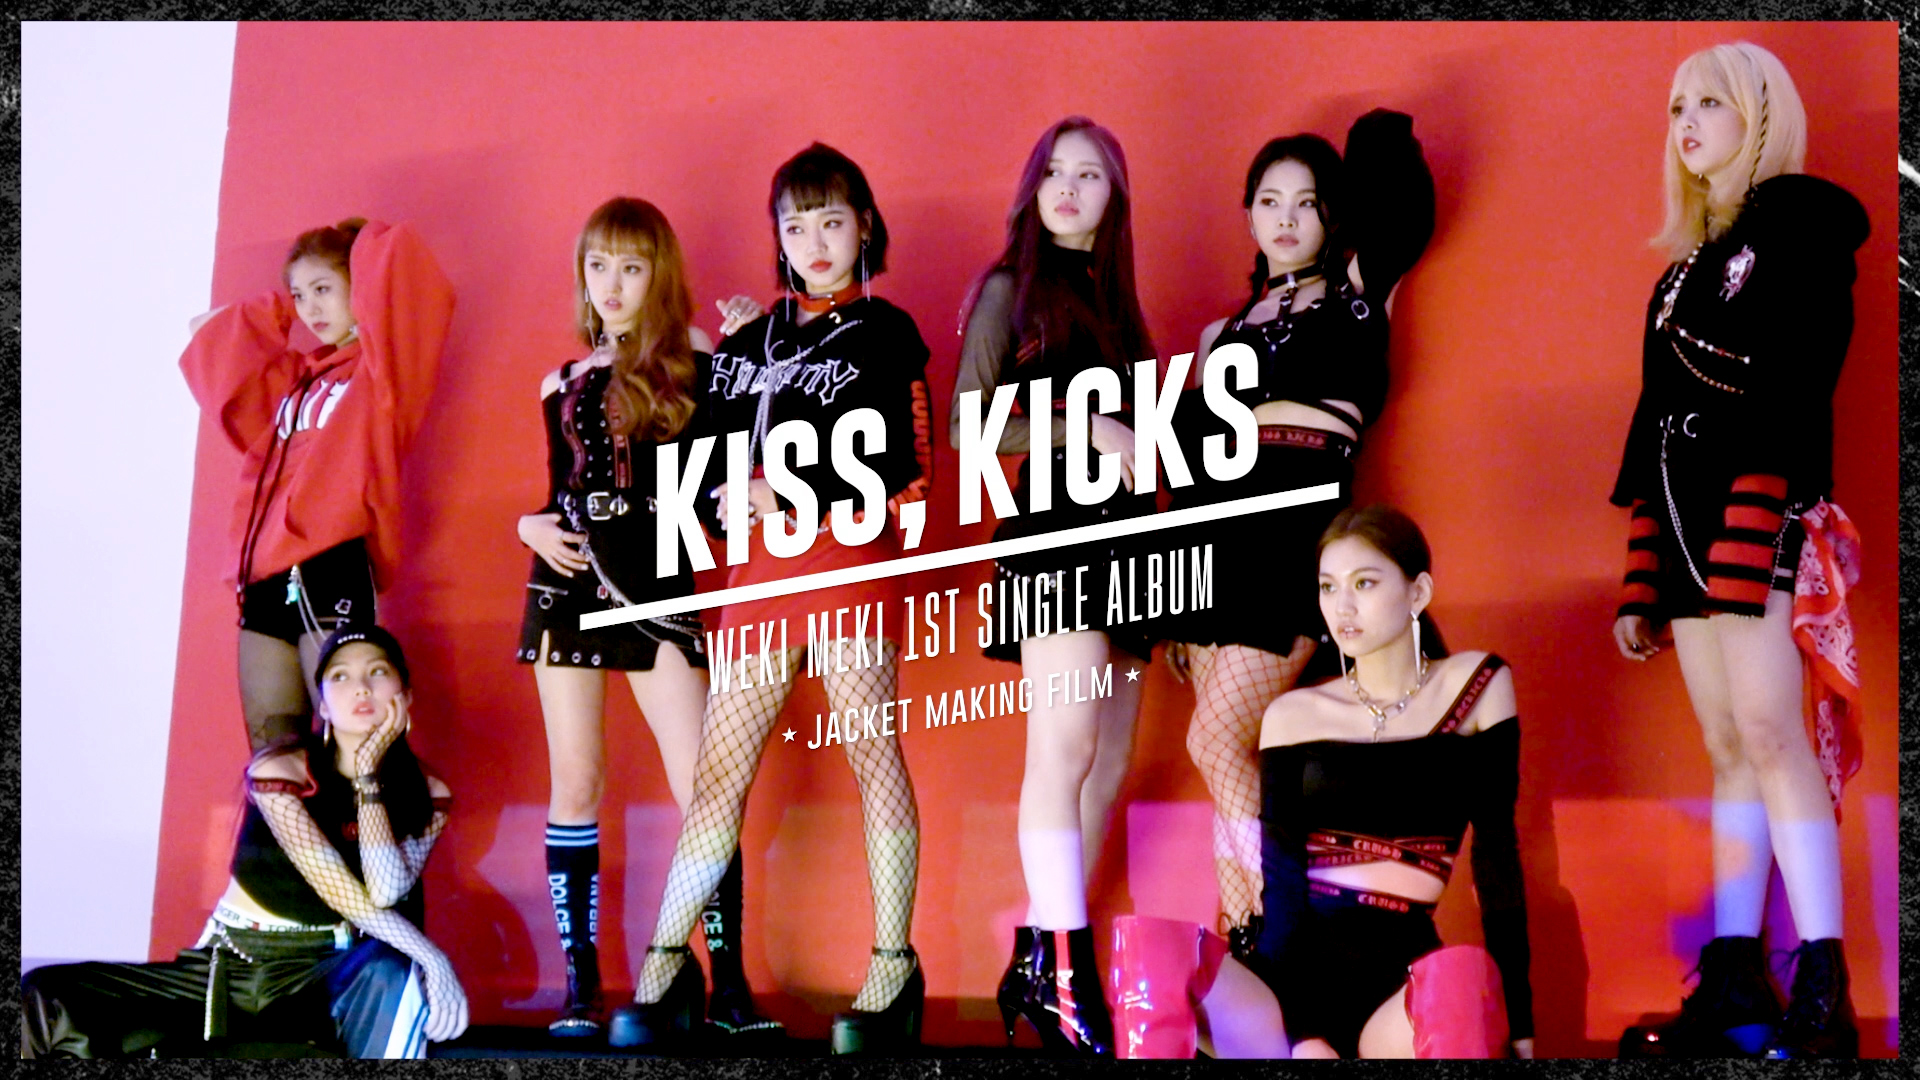 Weki Meki 위키미키 - 1st Single Album 'KISS, KICKS' JACKET MAKING FILM